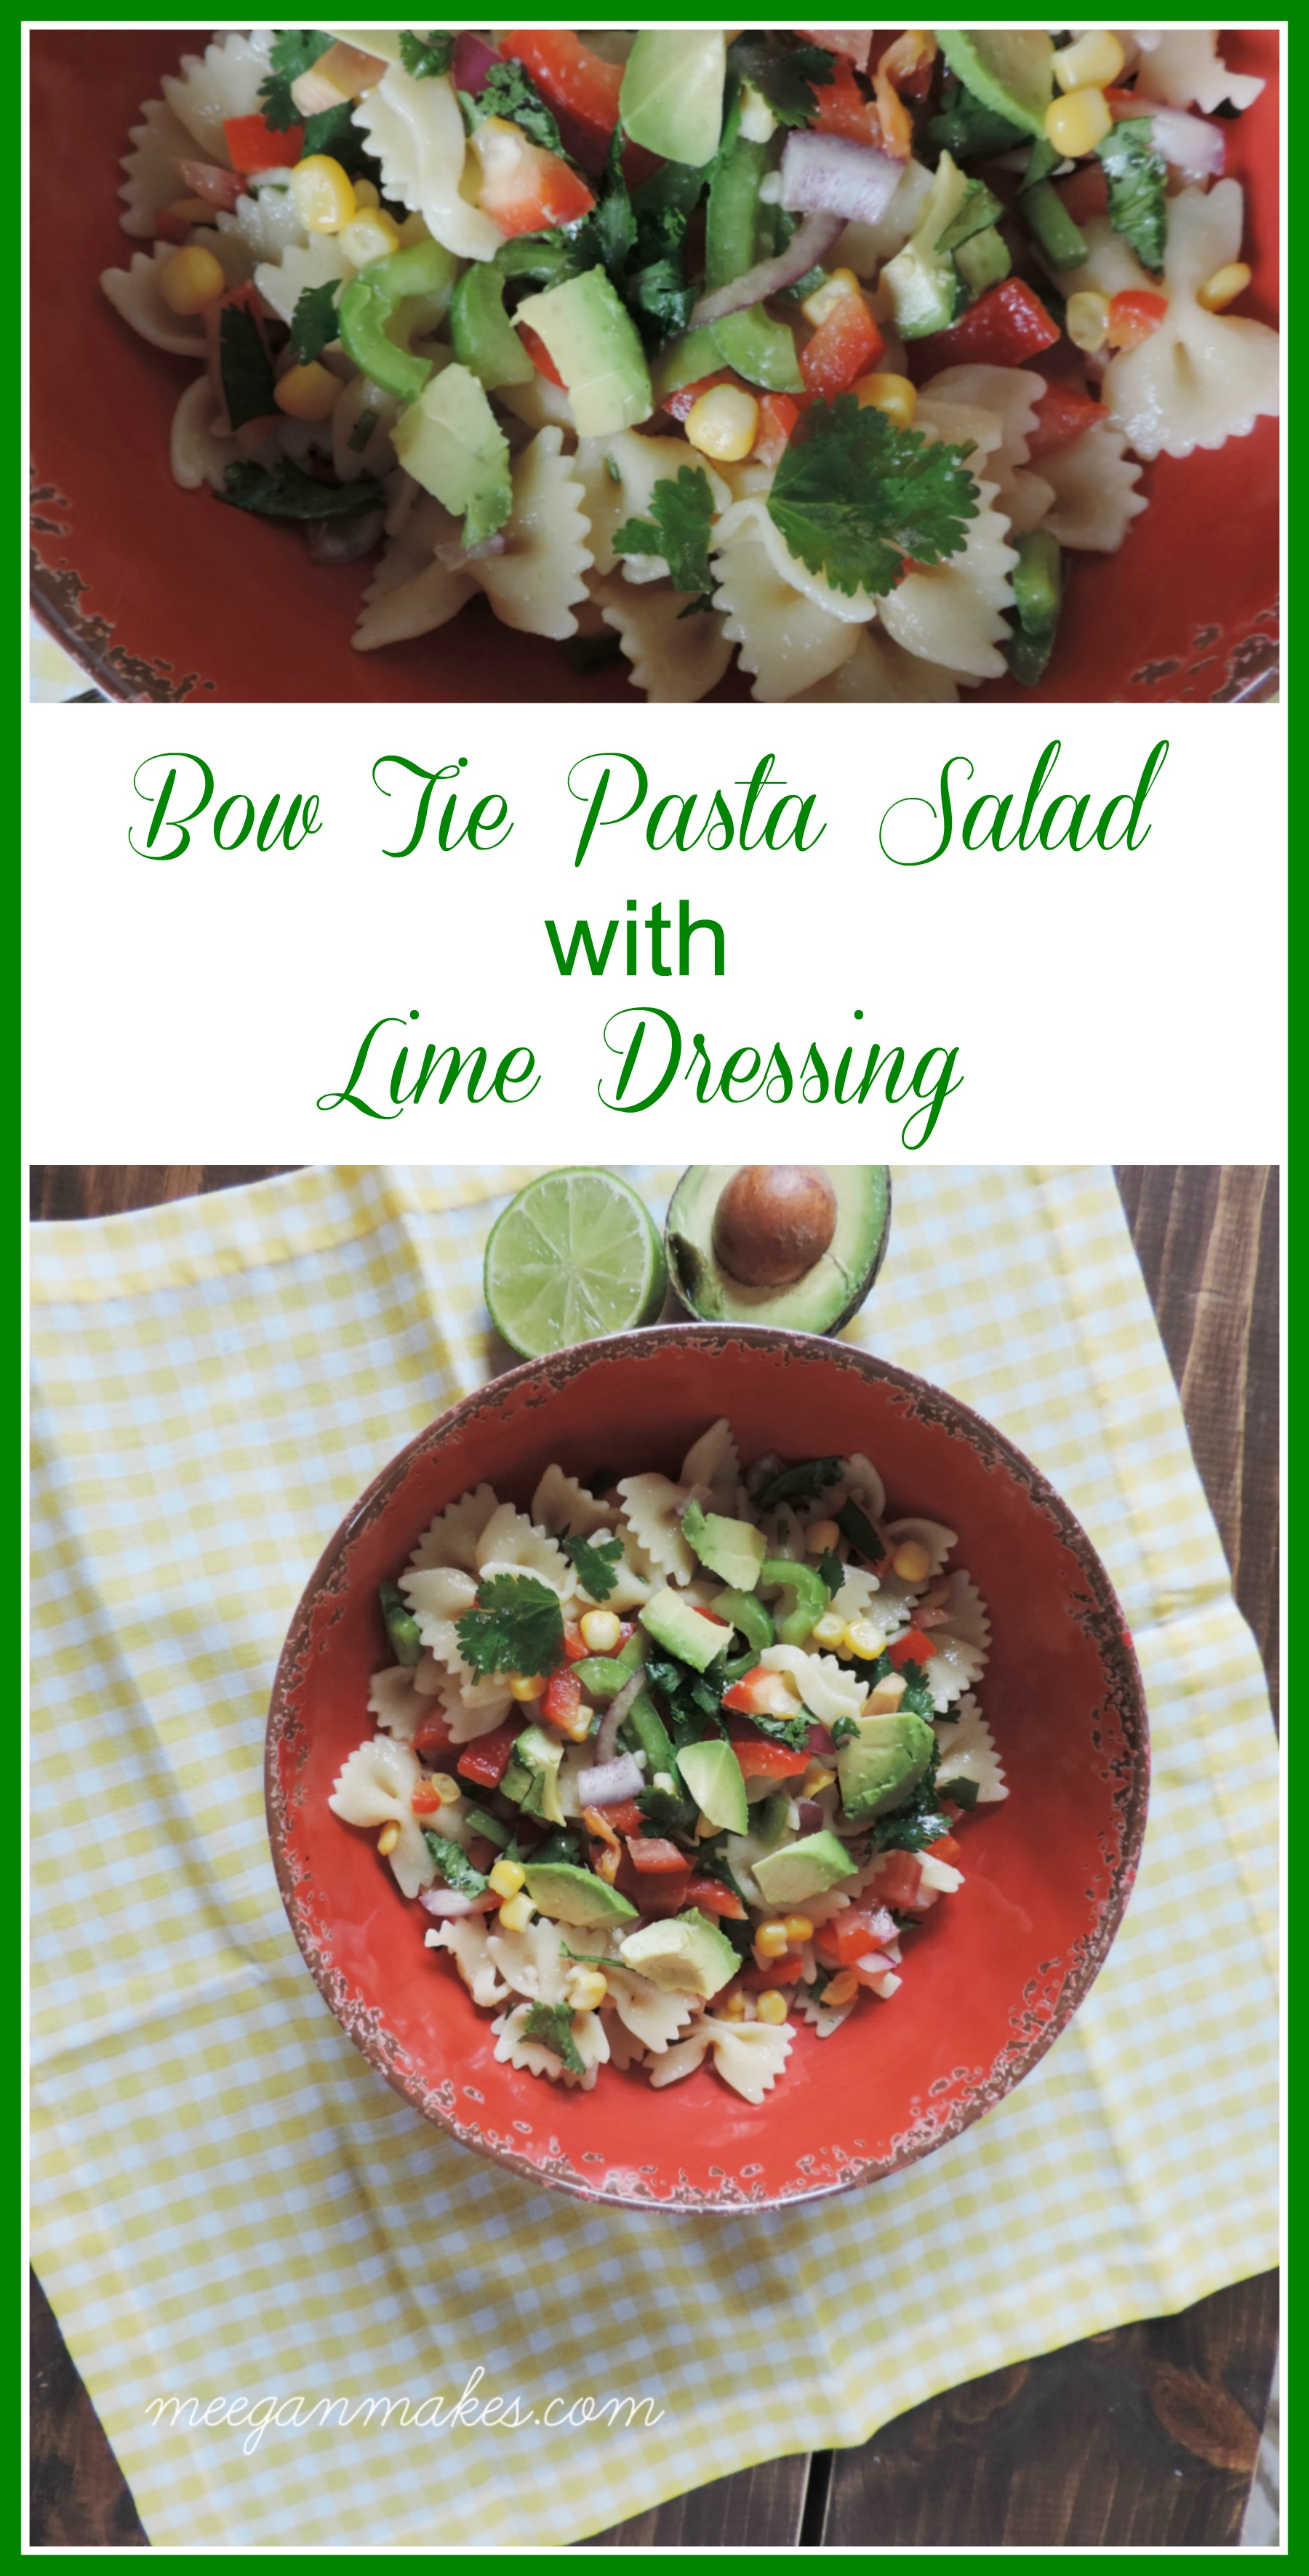 Bow Tie Pasta Salad with Lime Dressing by meeganmakes.com